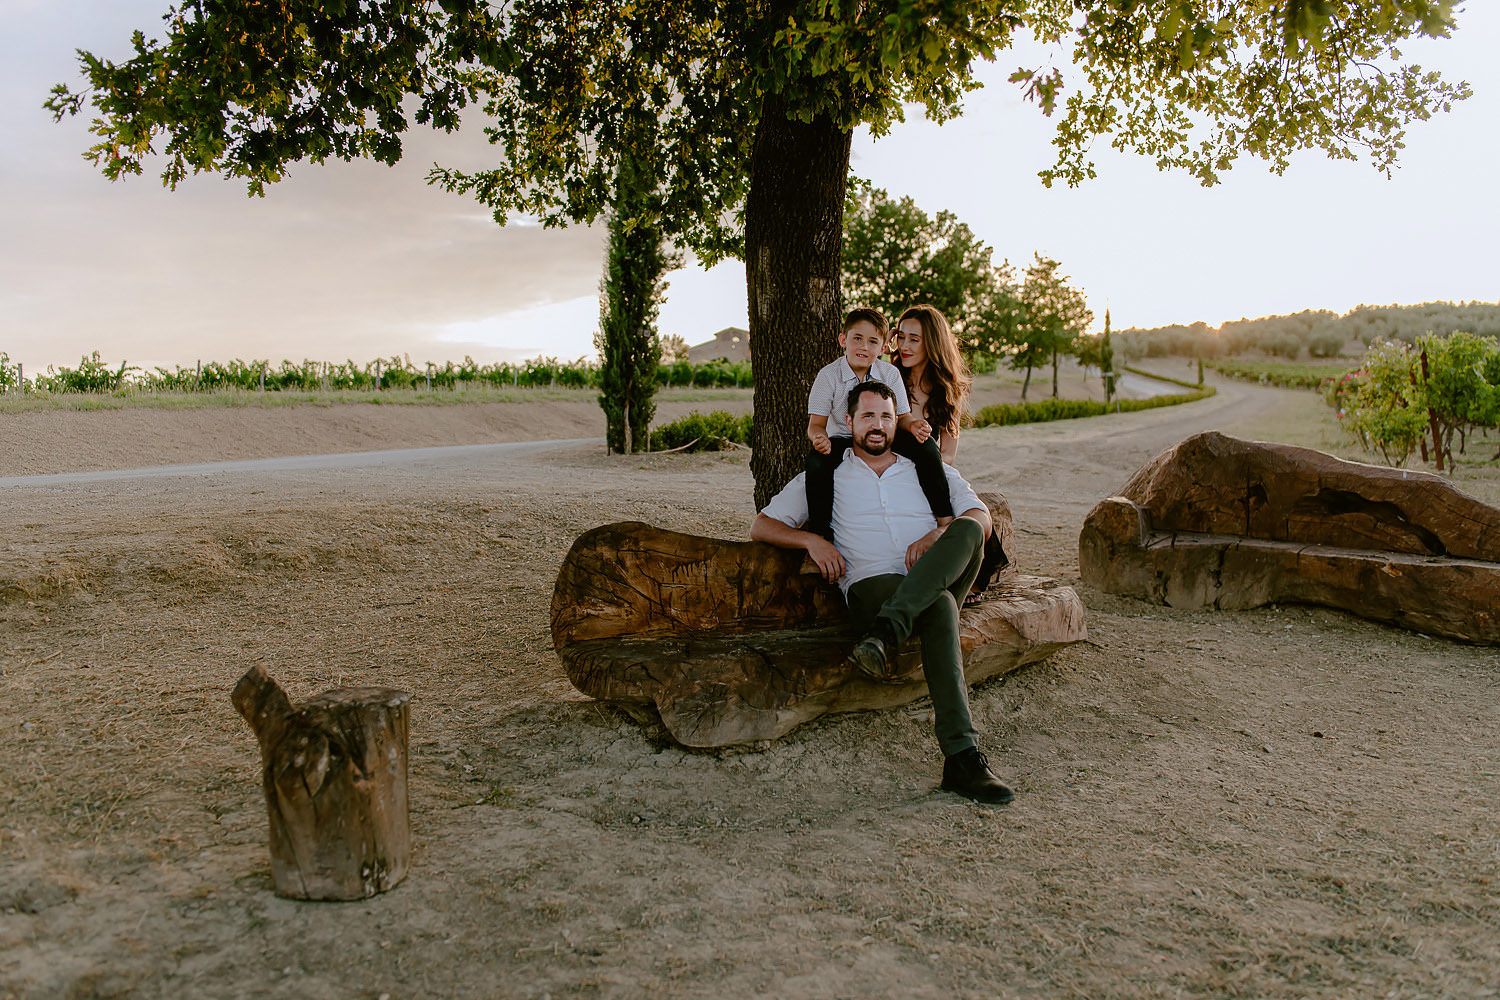 photographer florence family travel vacation chianti rolling hills vineyards chiantishite